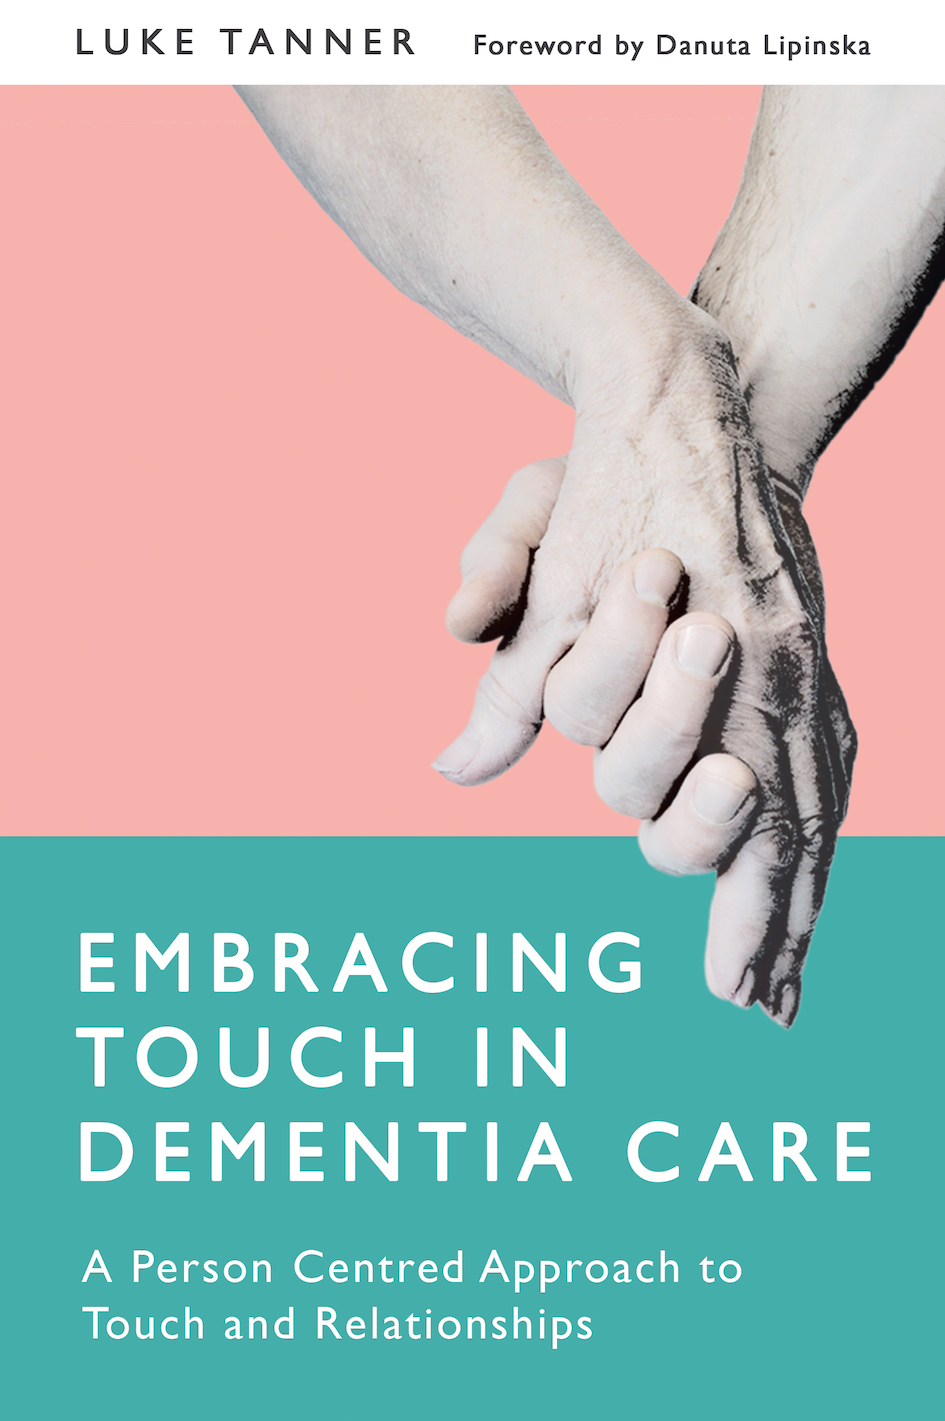 Restoring Trust in The Power of Touch - PUBLISHED MAY 2017!'A welcome addition to our field. This book celebrates the potential of touch while also confronting its challenges, and helps to ensure that touch takes its rightful place as integral to person-centred care.'Dr Murna Downs, Head of the School of Dementia Studies, University of Bradford'Individual person-centred care is a key aspect of improving the quality of life for people with dementia. There are many approaches to this and having a range of techniques available that can help, where appropriate, to improve relationships are key. Luke Tanner should be congratulated at describing, so adroitly, touch as one such approach.'Alistair Burns, Professor of Old Age Psychiatry, University of Manchester